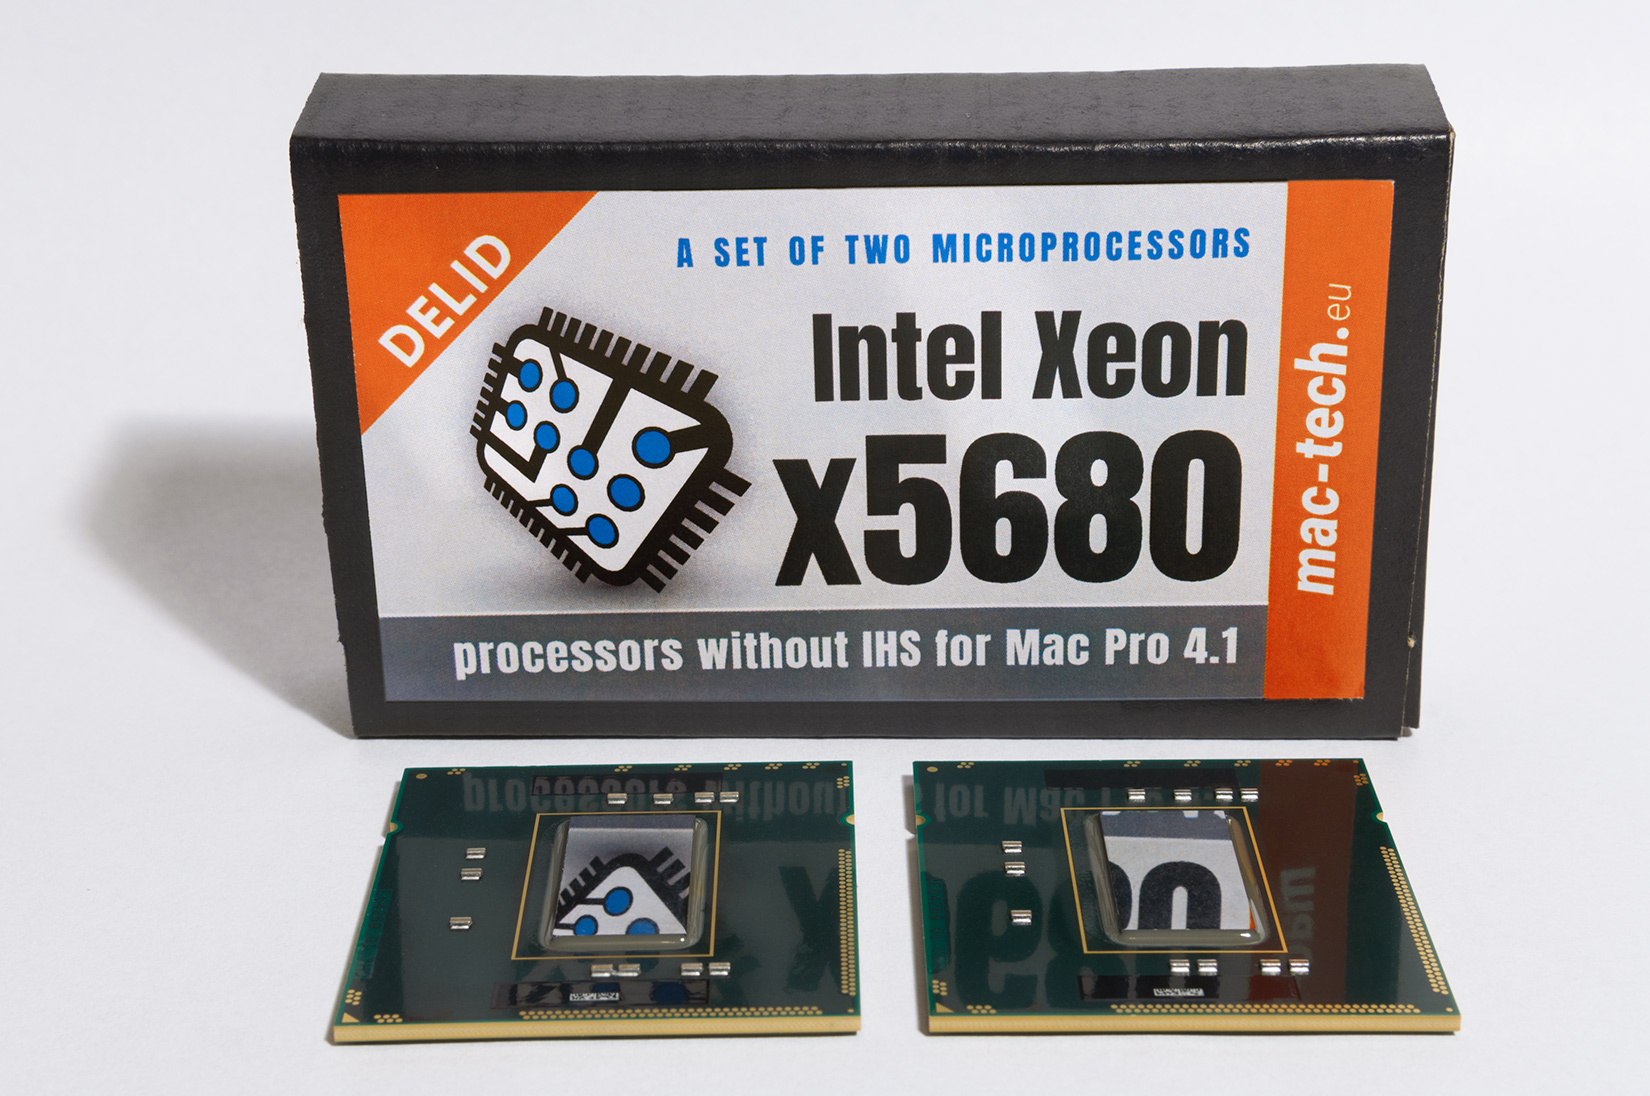 Mac-Tech - Intel Xeon 5680 processors for Mac Pro 4,1 2009 without IHS (delid) Xeon HEX-Core x5690, Xeon x5680, Xeon x5675, Xeon x5670 six cores